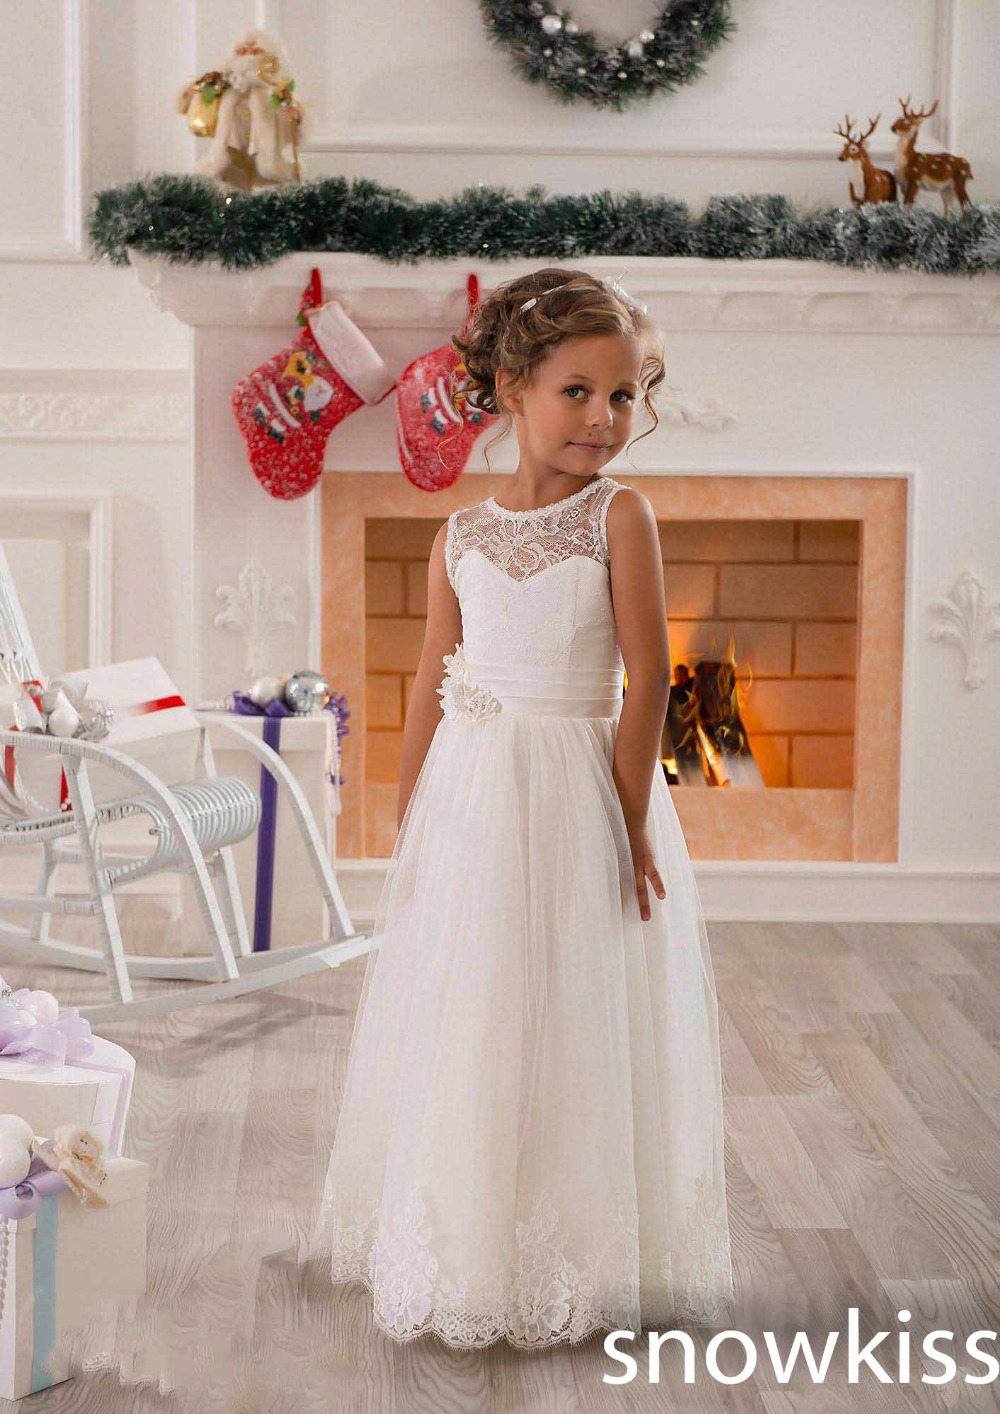 New arrival white/ivory sheer neck lace tulle A-line flower girl dress beautiful kids first communion gowns for wedding occasion new white ivory flower girl dresses for wedding 3d flowers puffy tulle with big bow girls first communion gowns